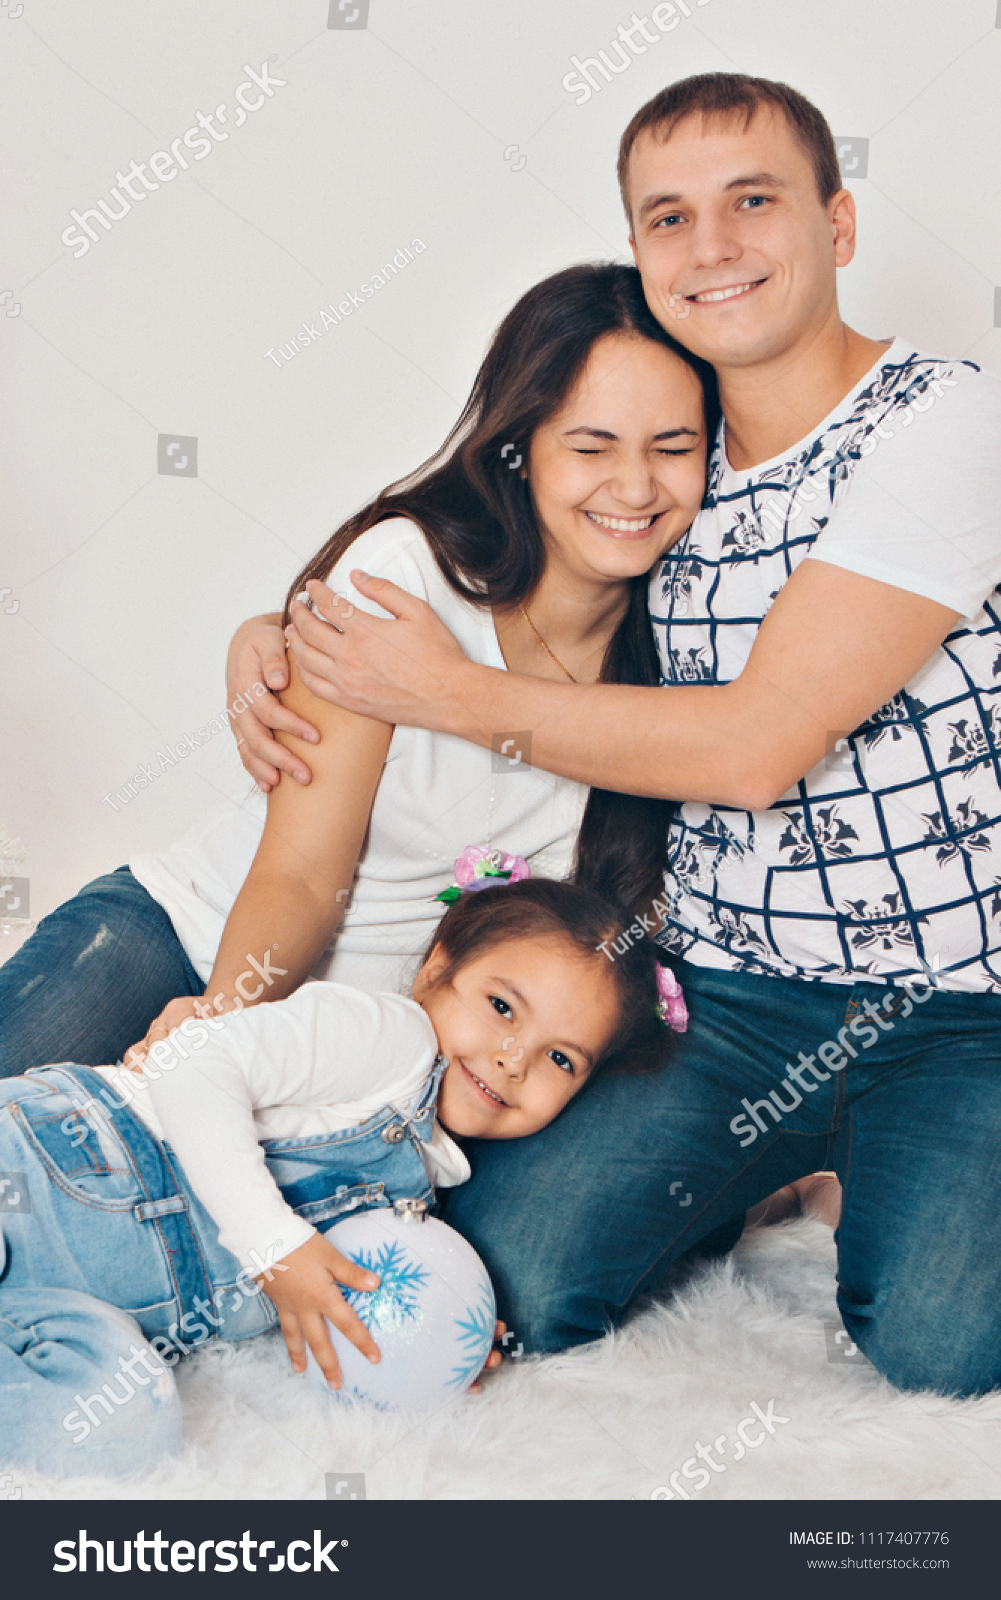 Family portrait on the floor on white background